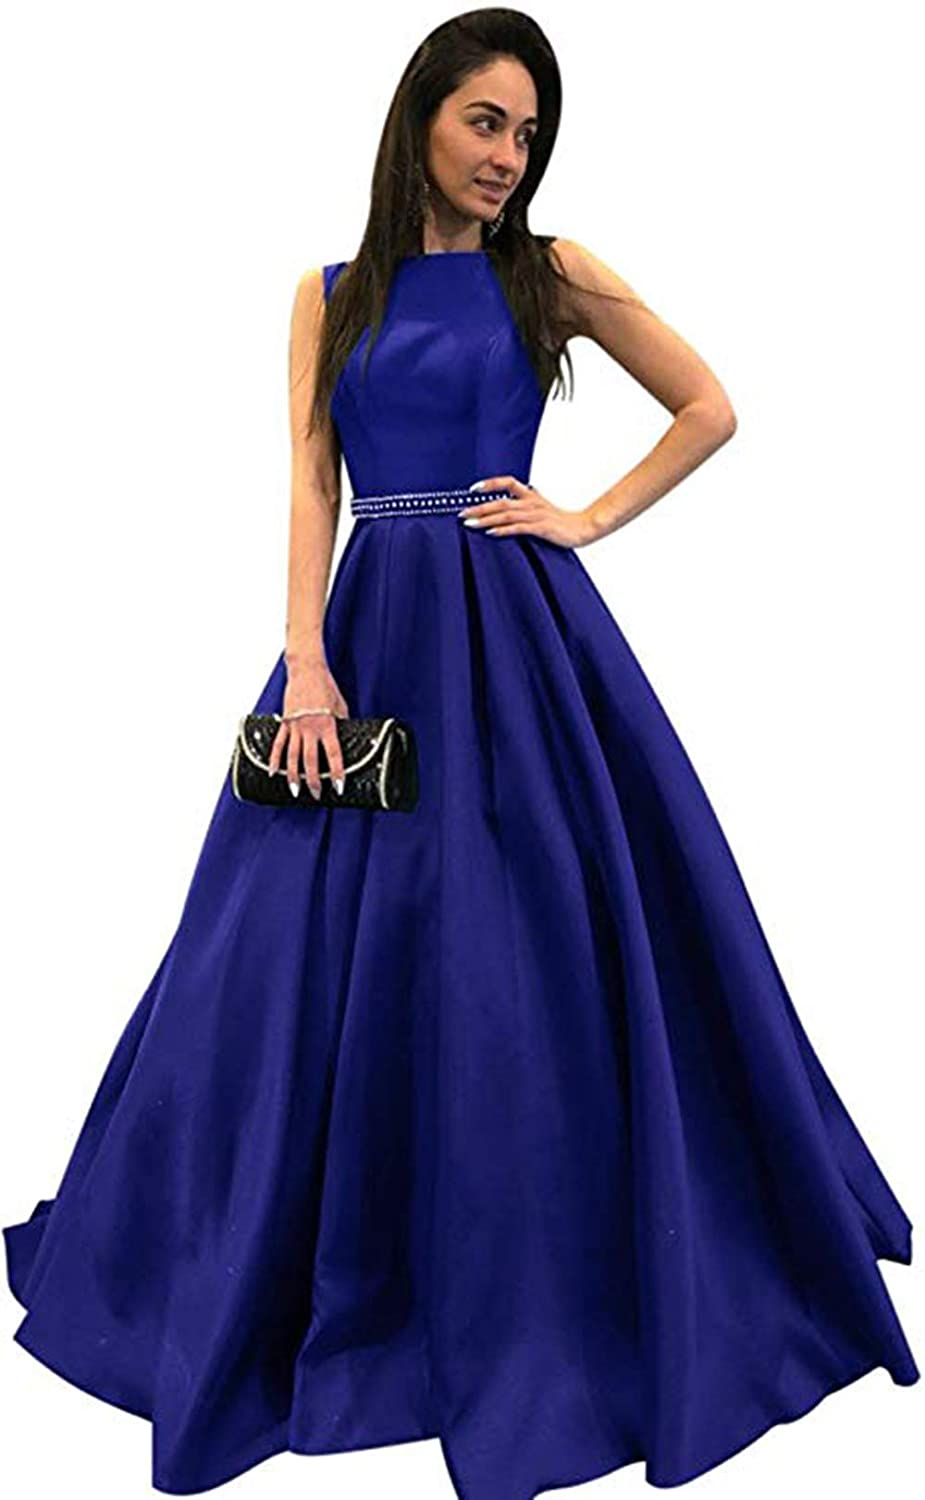 Royal bluee Ri Yun Womens Scoop Neck Long Prom Dresses 2019 Backless Beaded ALine Satin Formal Evening Ball Gowns with Pockets